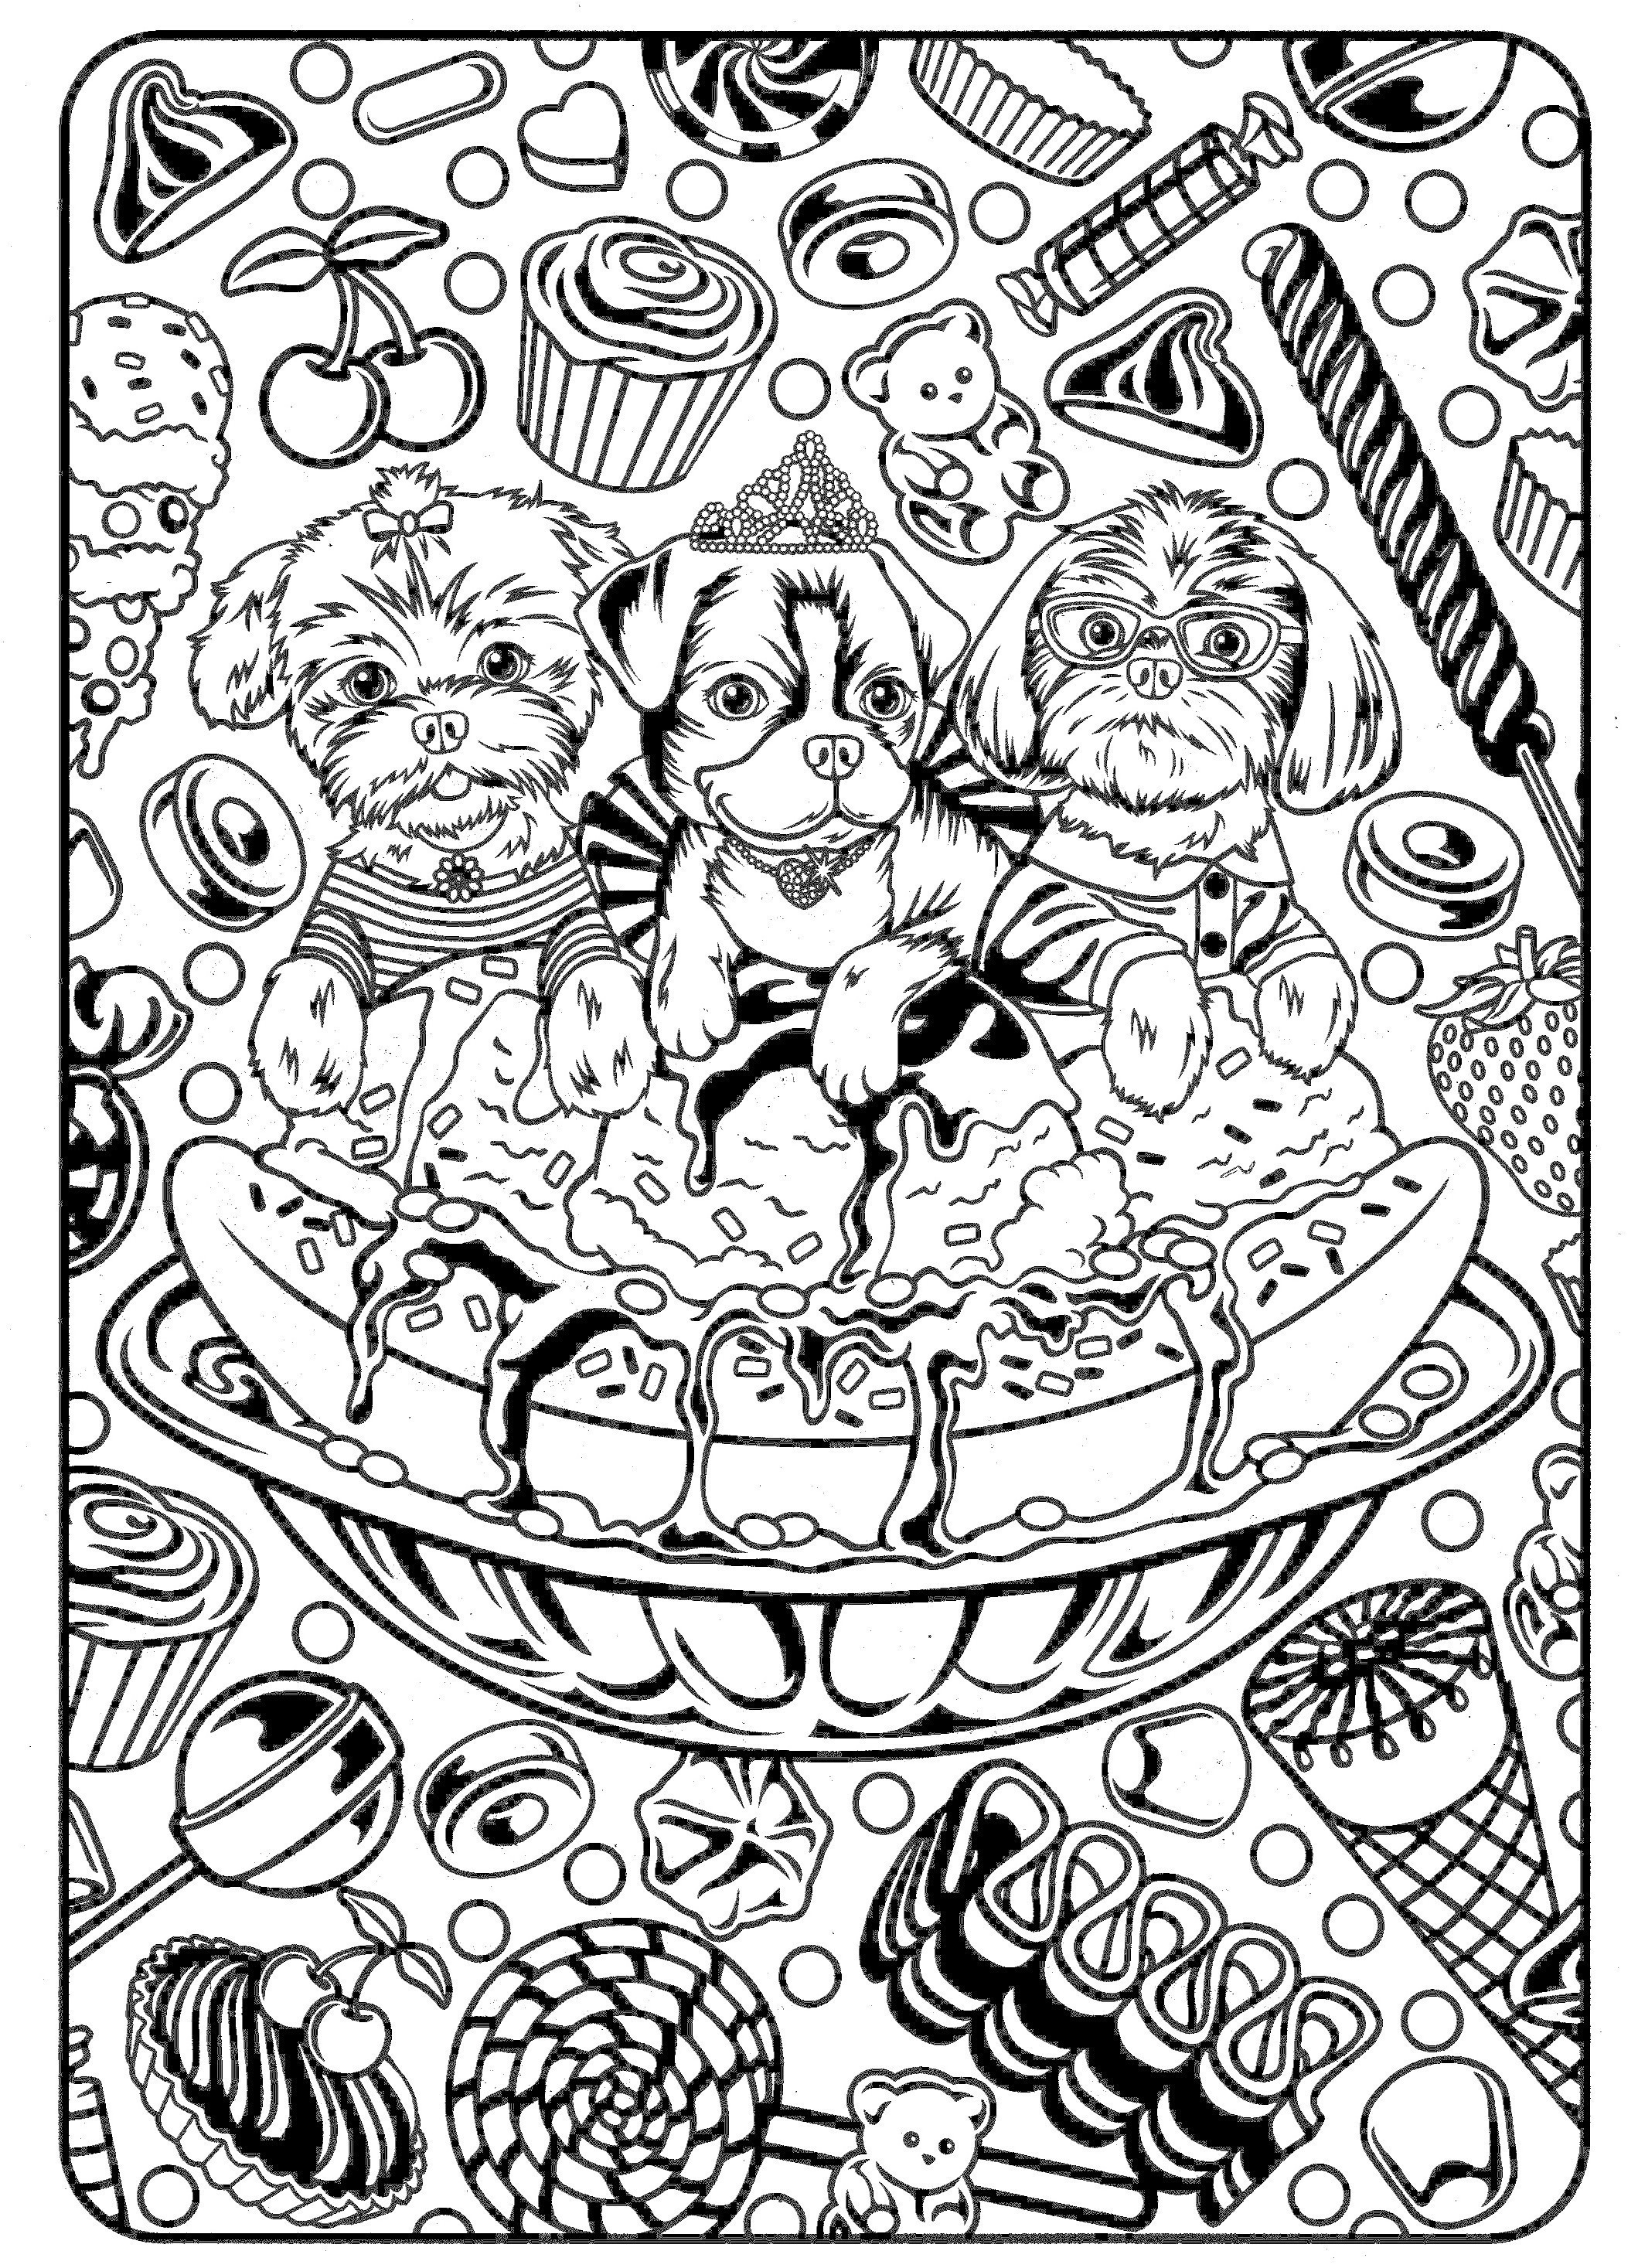 Sacrament Coloring Pages  Printable 16b - Free For kids